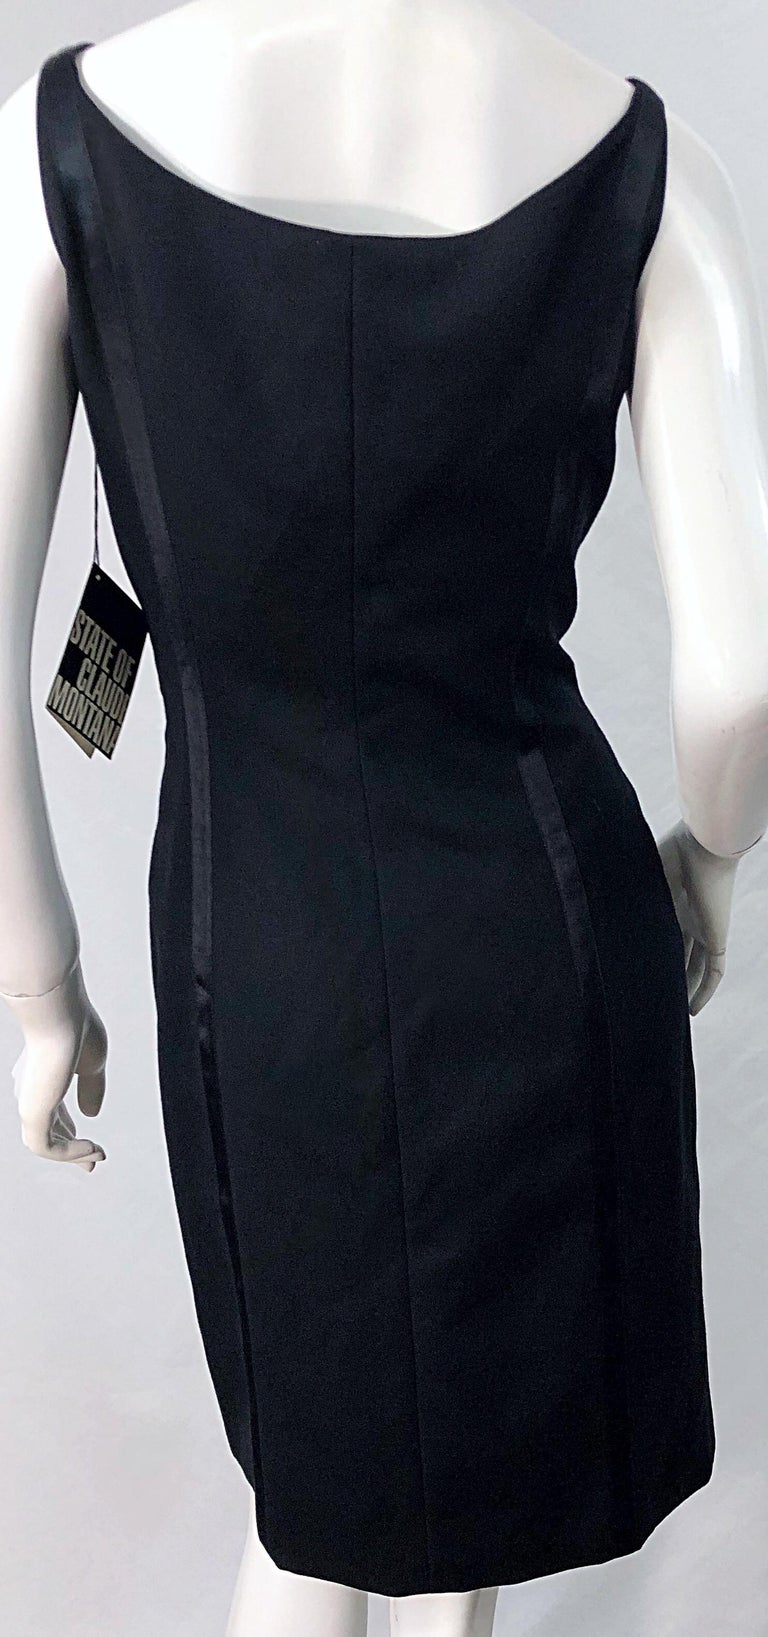 NWT 1990s Claude Montana Size 6 Vintage 90s Sleeveless Little Black Dress  For Sale 3